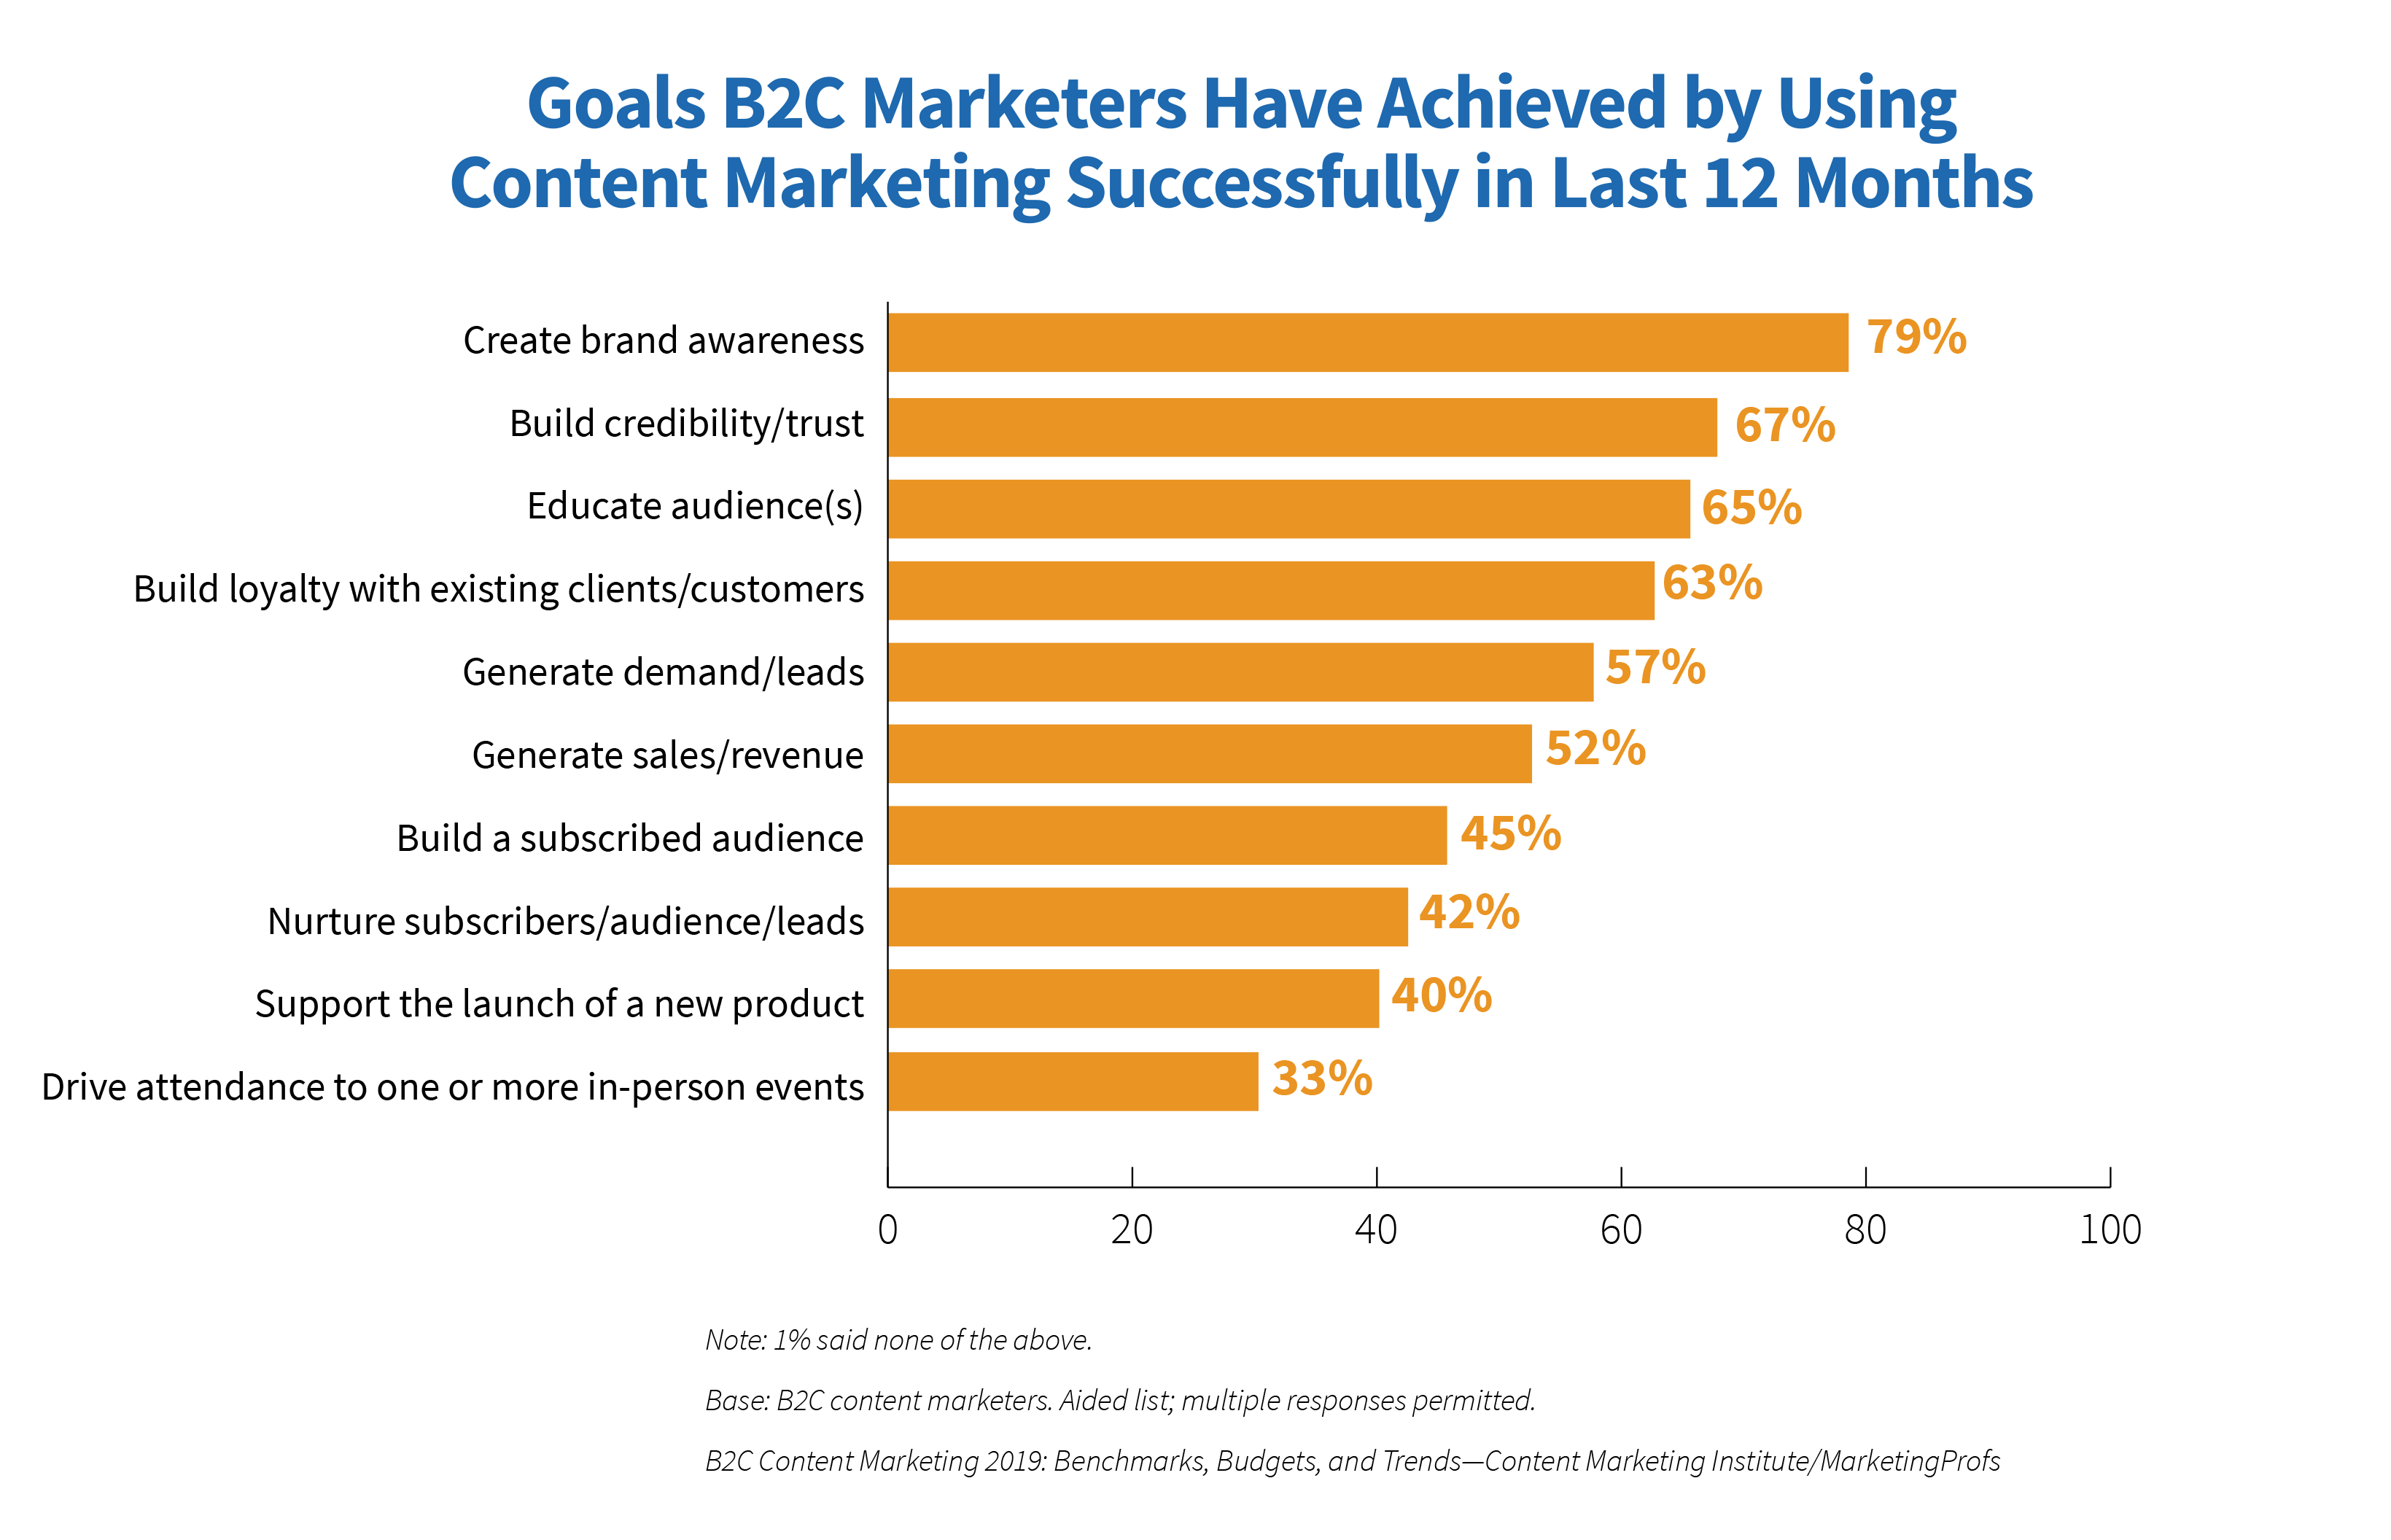 Goals B2C Marketers Have Achieved